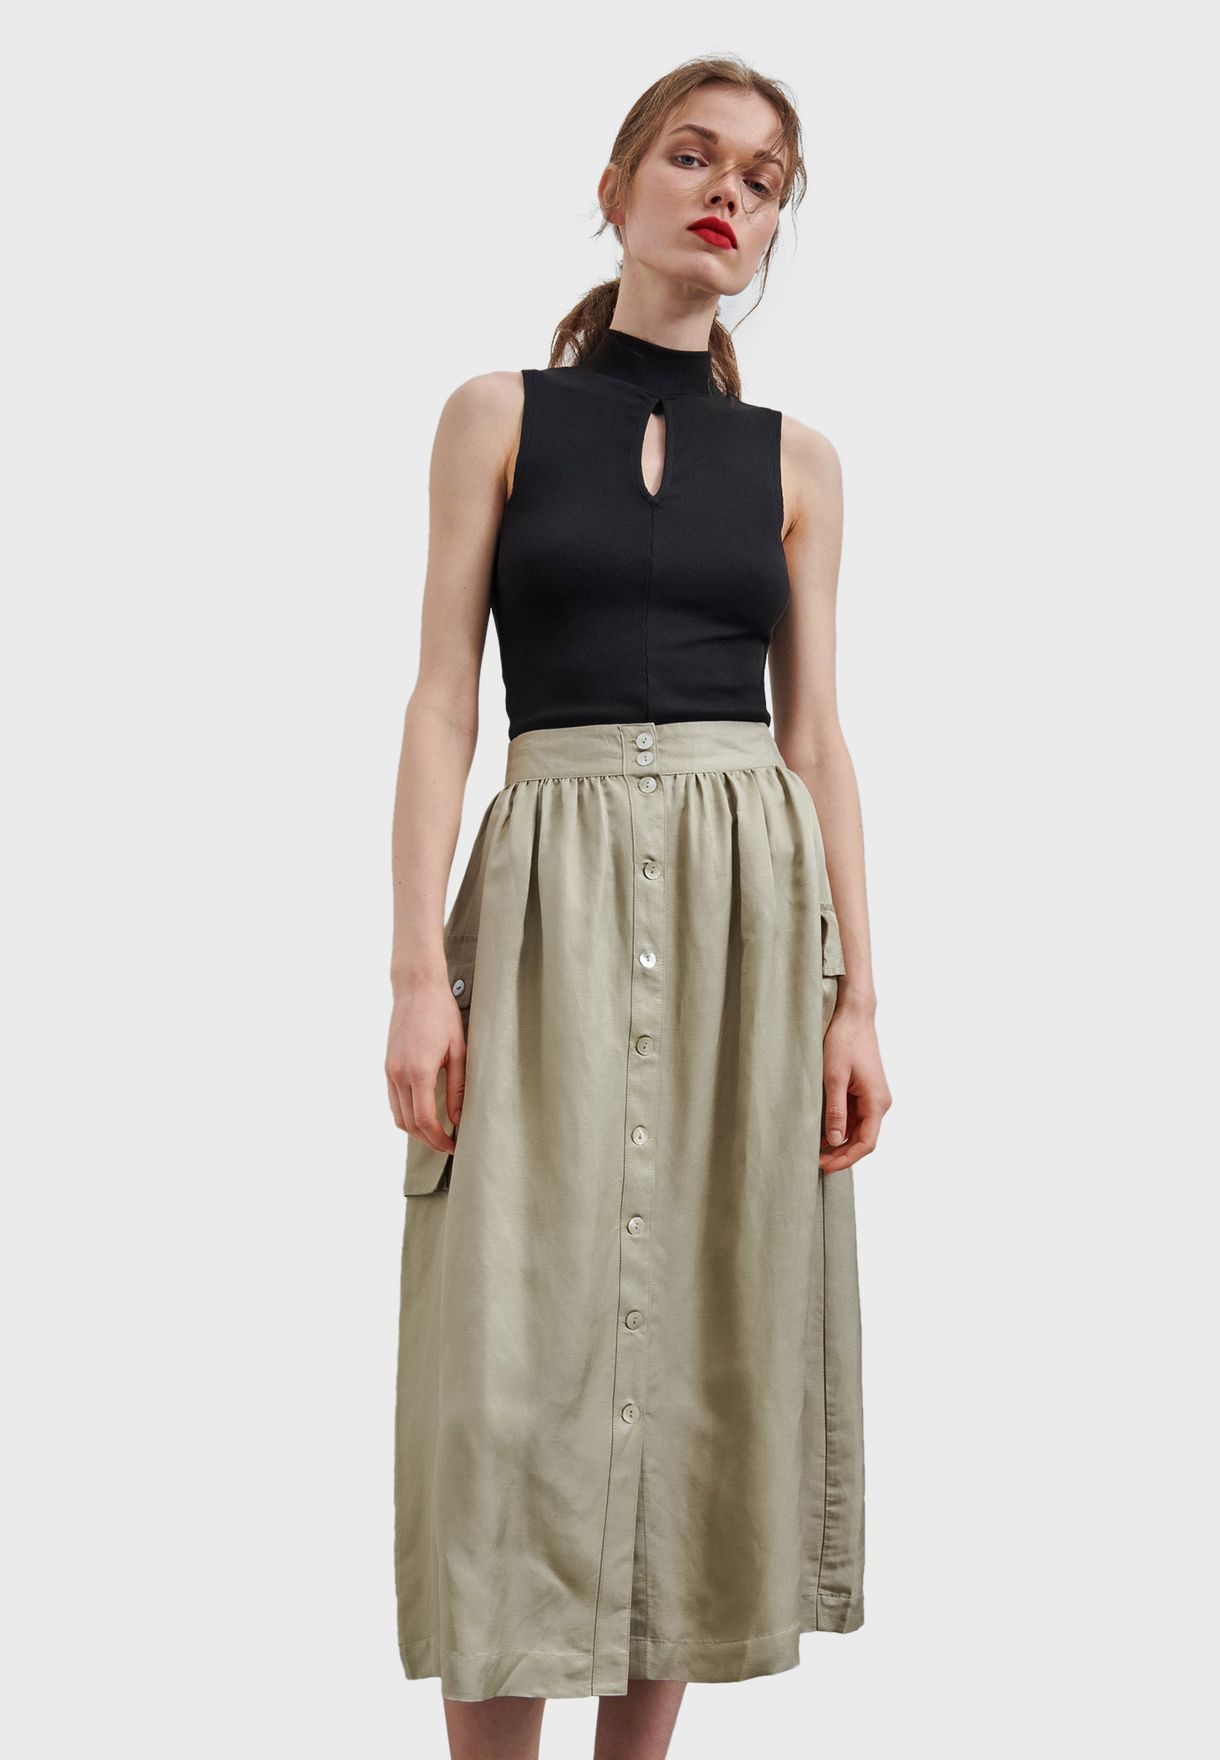 Reserved Button Down Skirt - Fashion